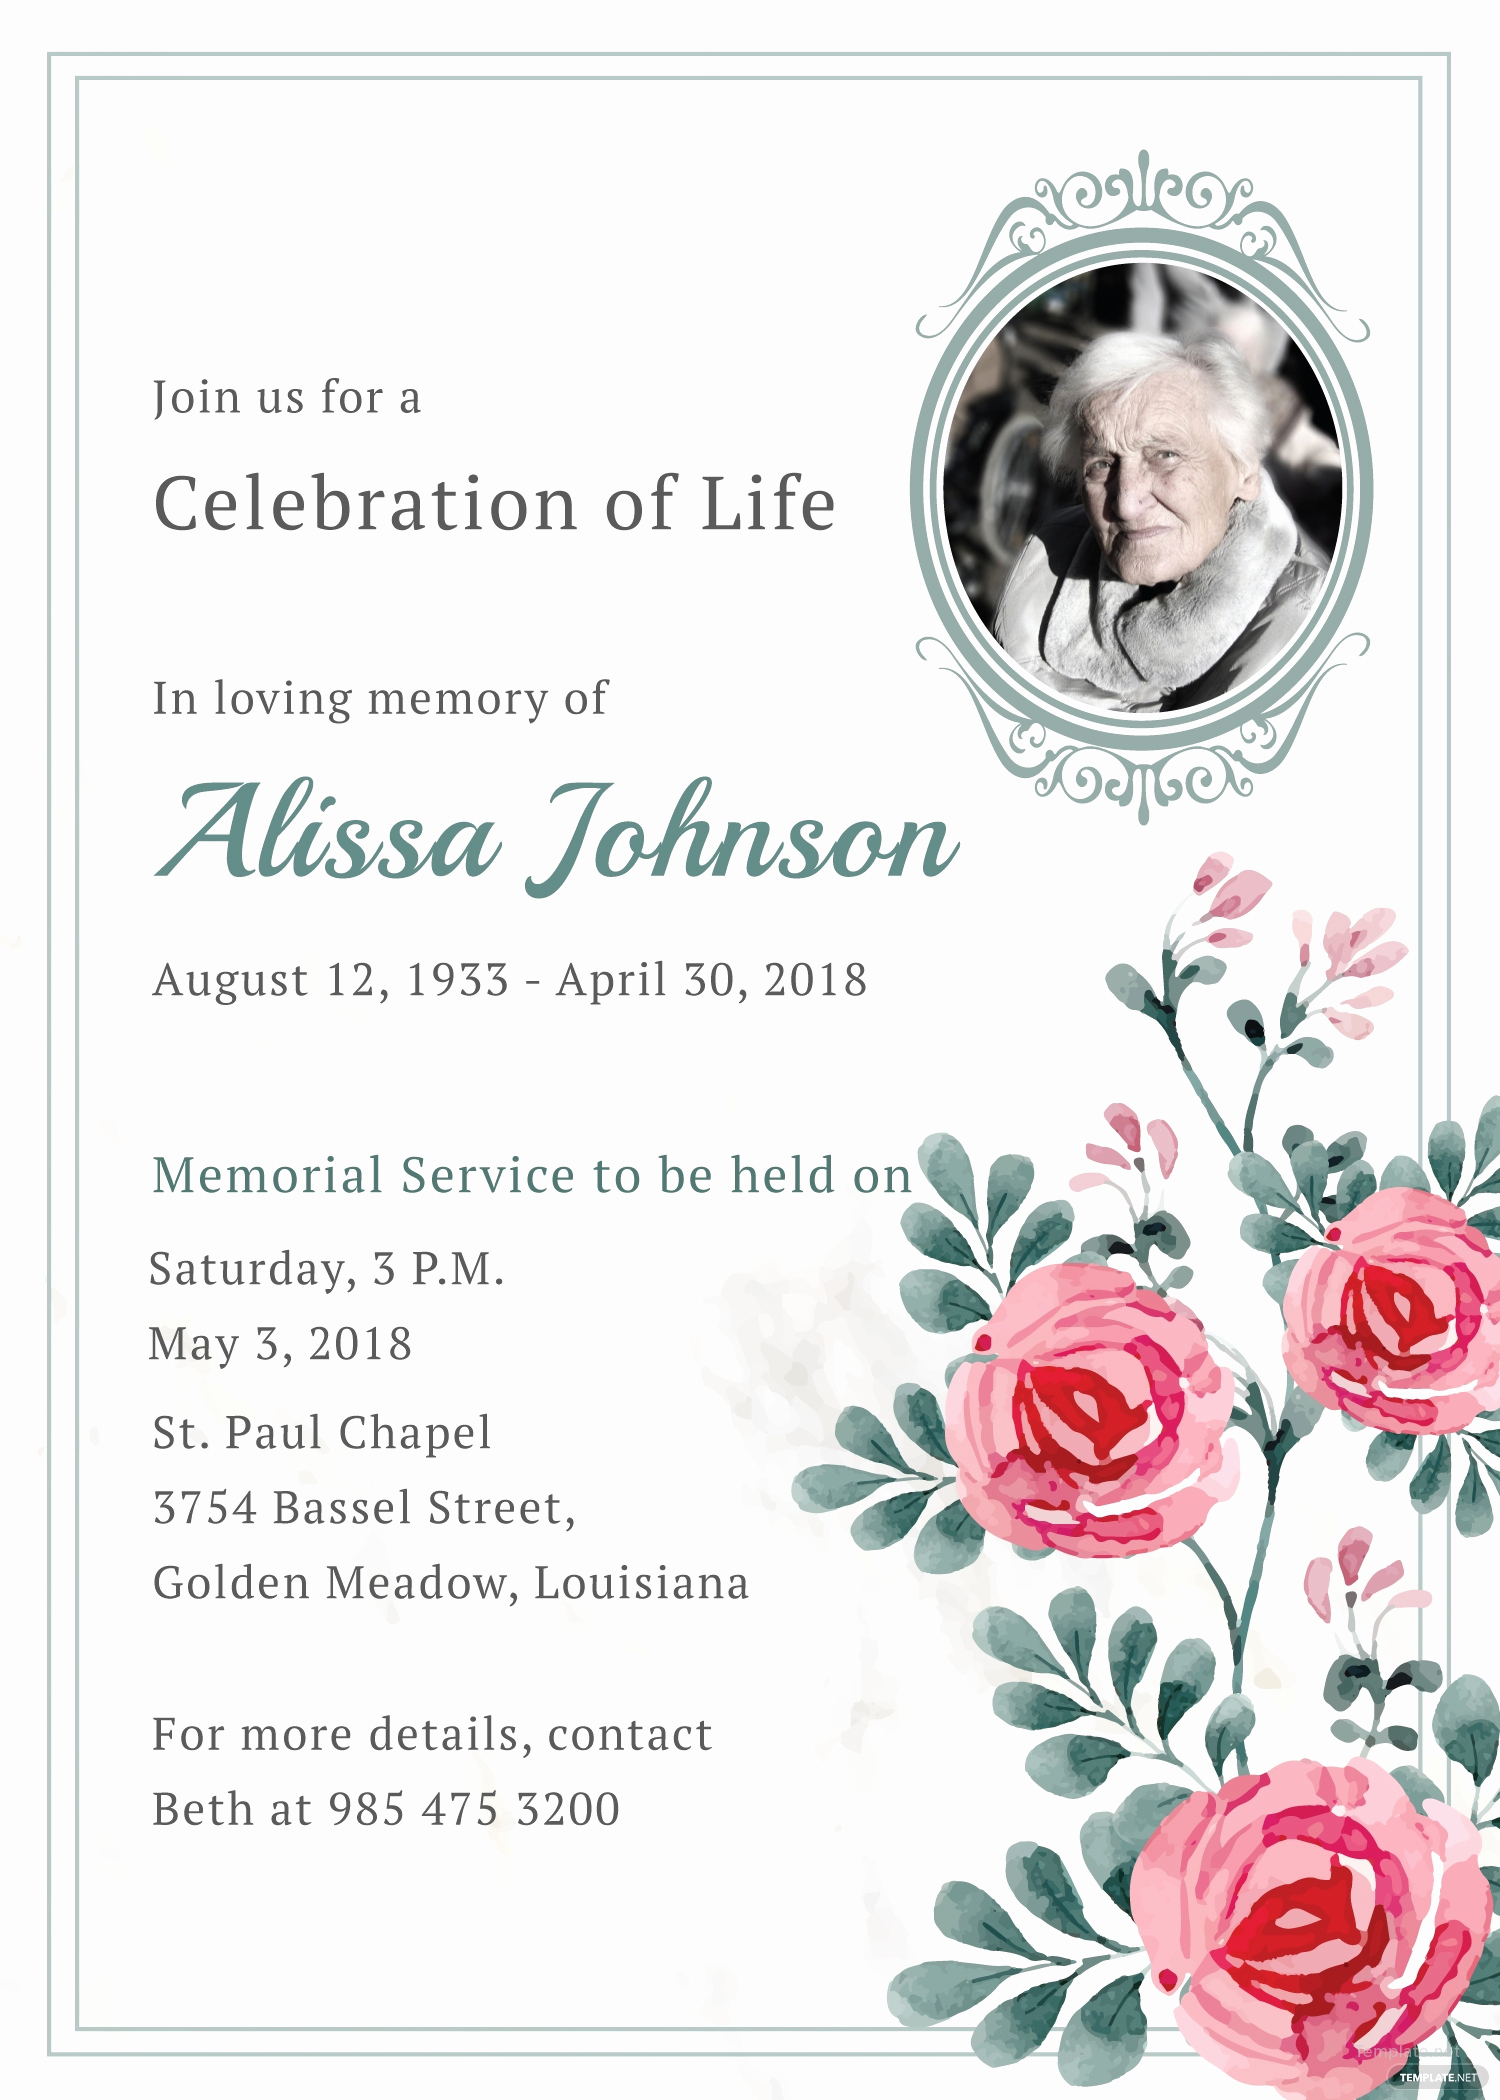 Memorial Service Invitation Template Free New Memorial Service Invitation Template In Adobe Illustrator